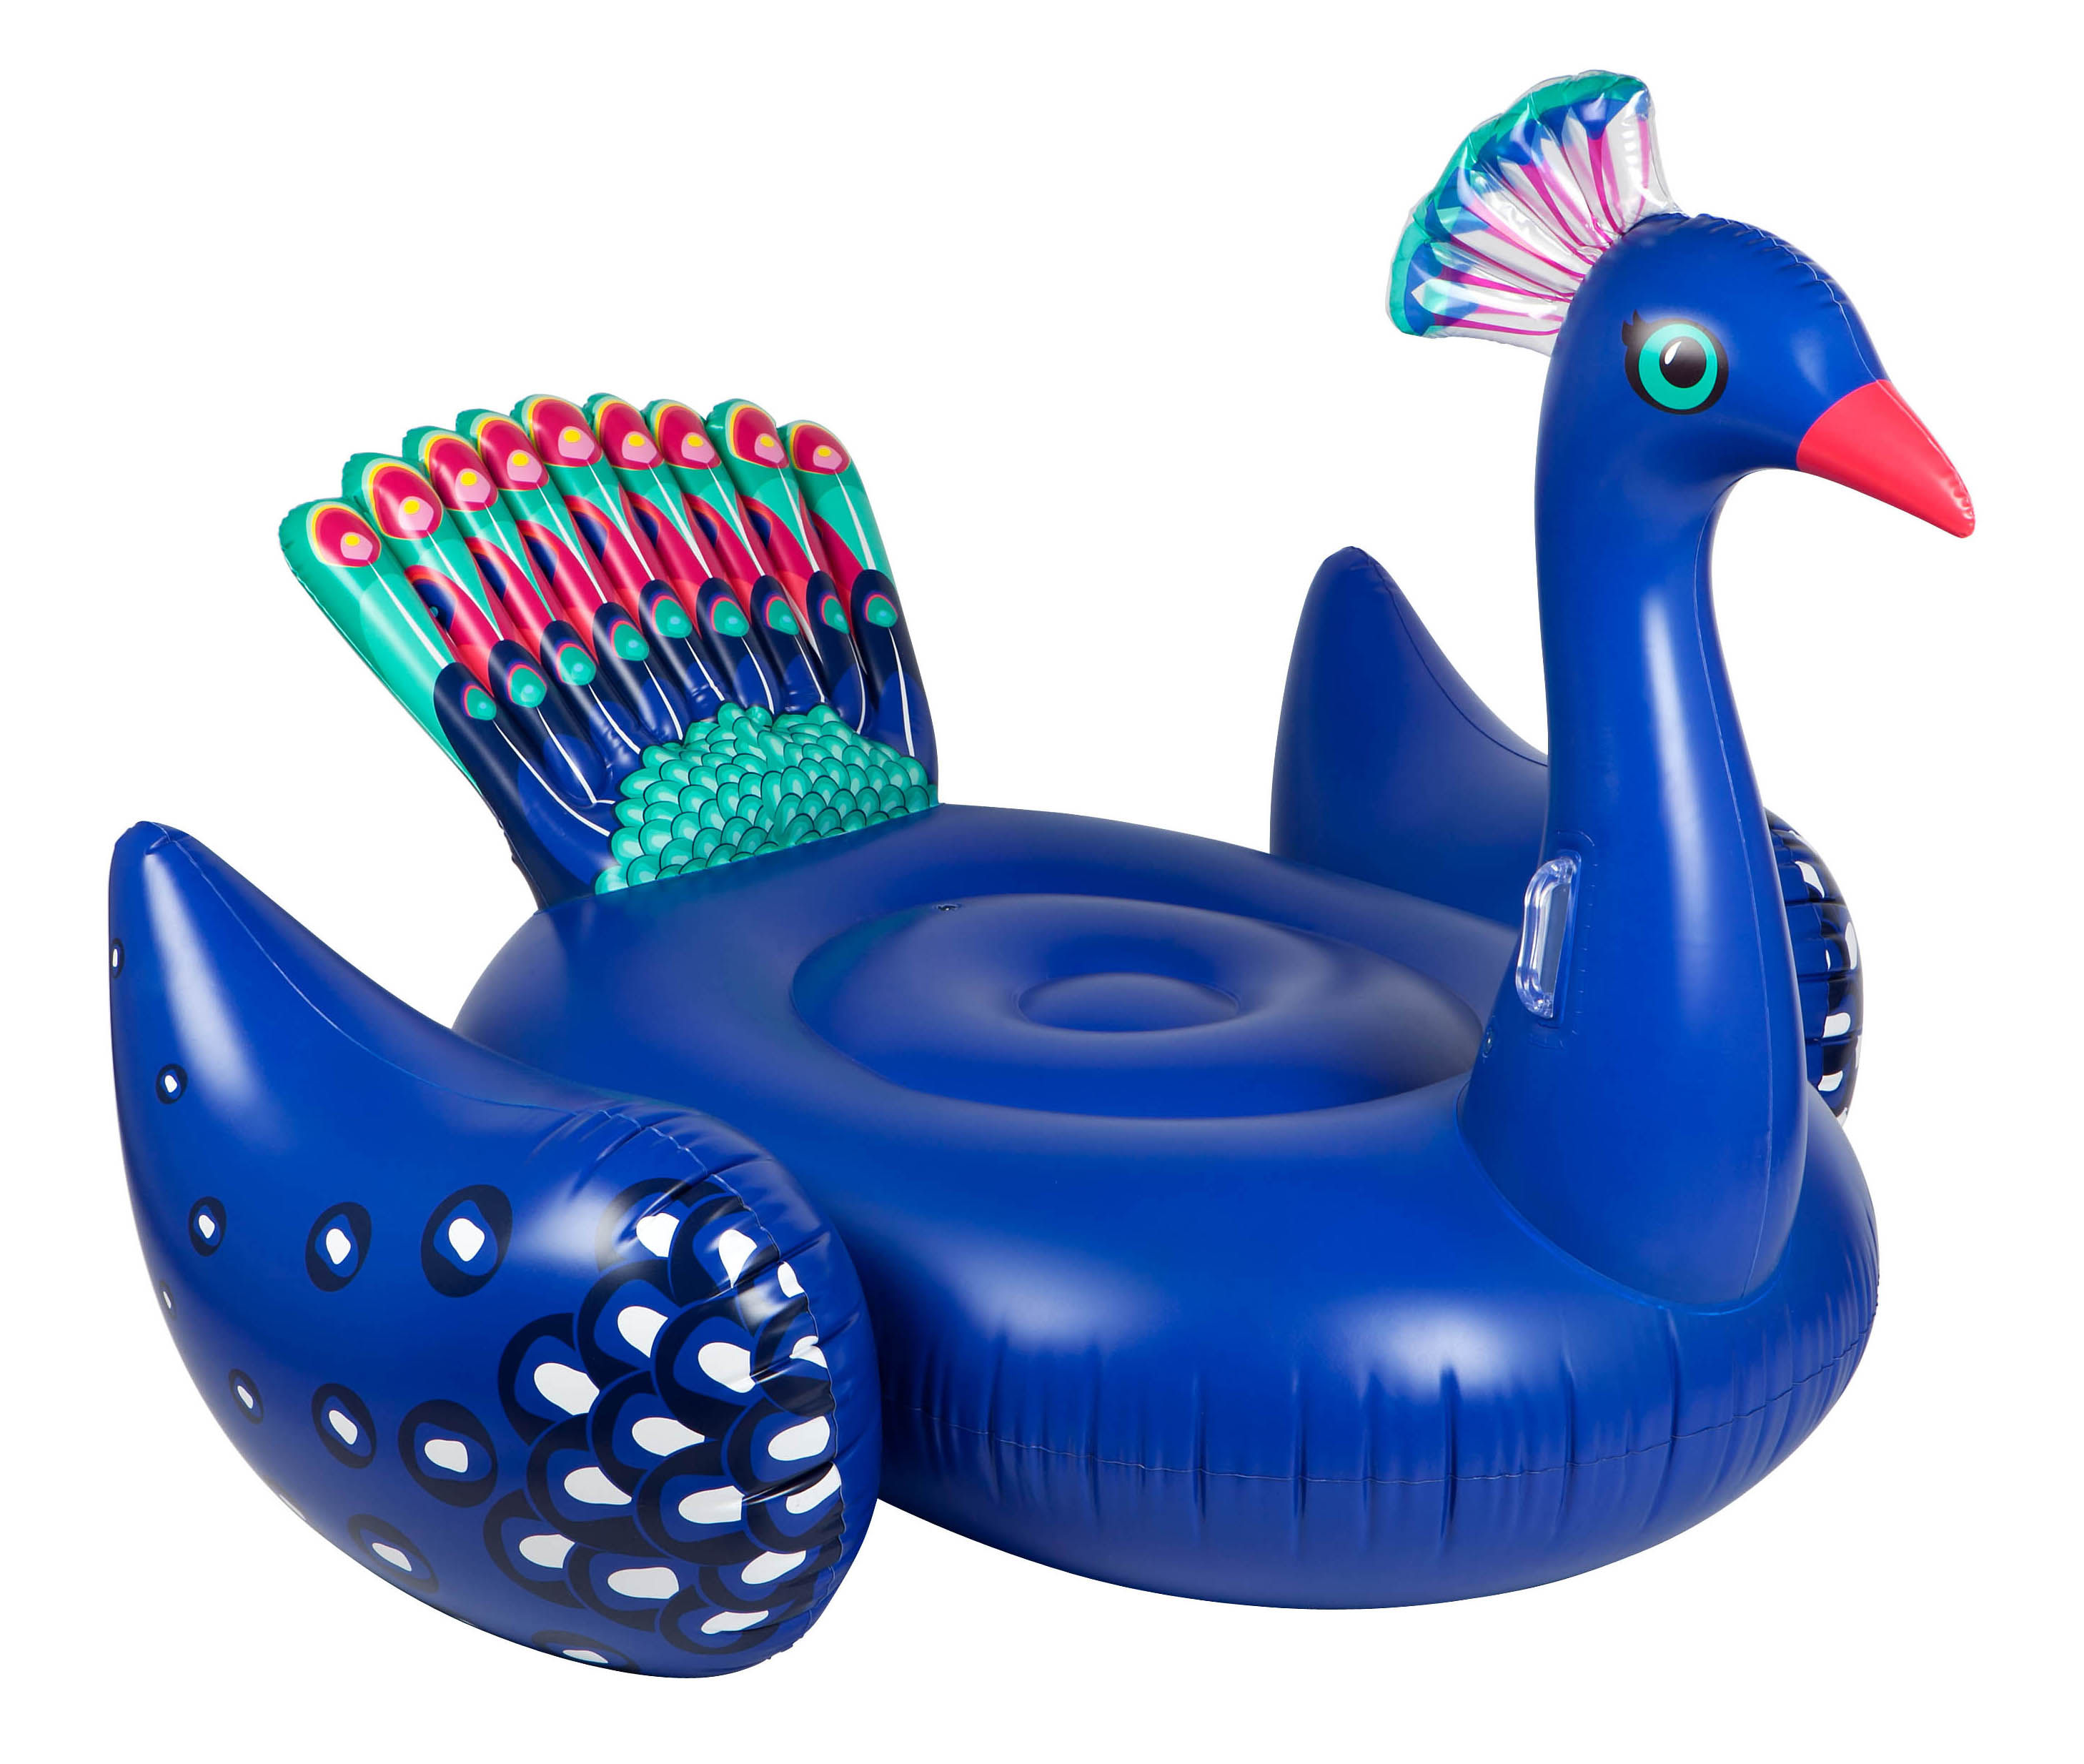 Decoration - Children's Home Accessories - Float inflatable - / Peacock - Ø 130 cm by Sunnylife - Peacock / Blue - High resistance PVC